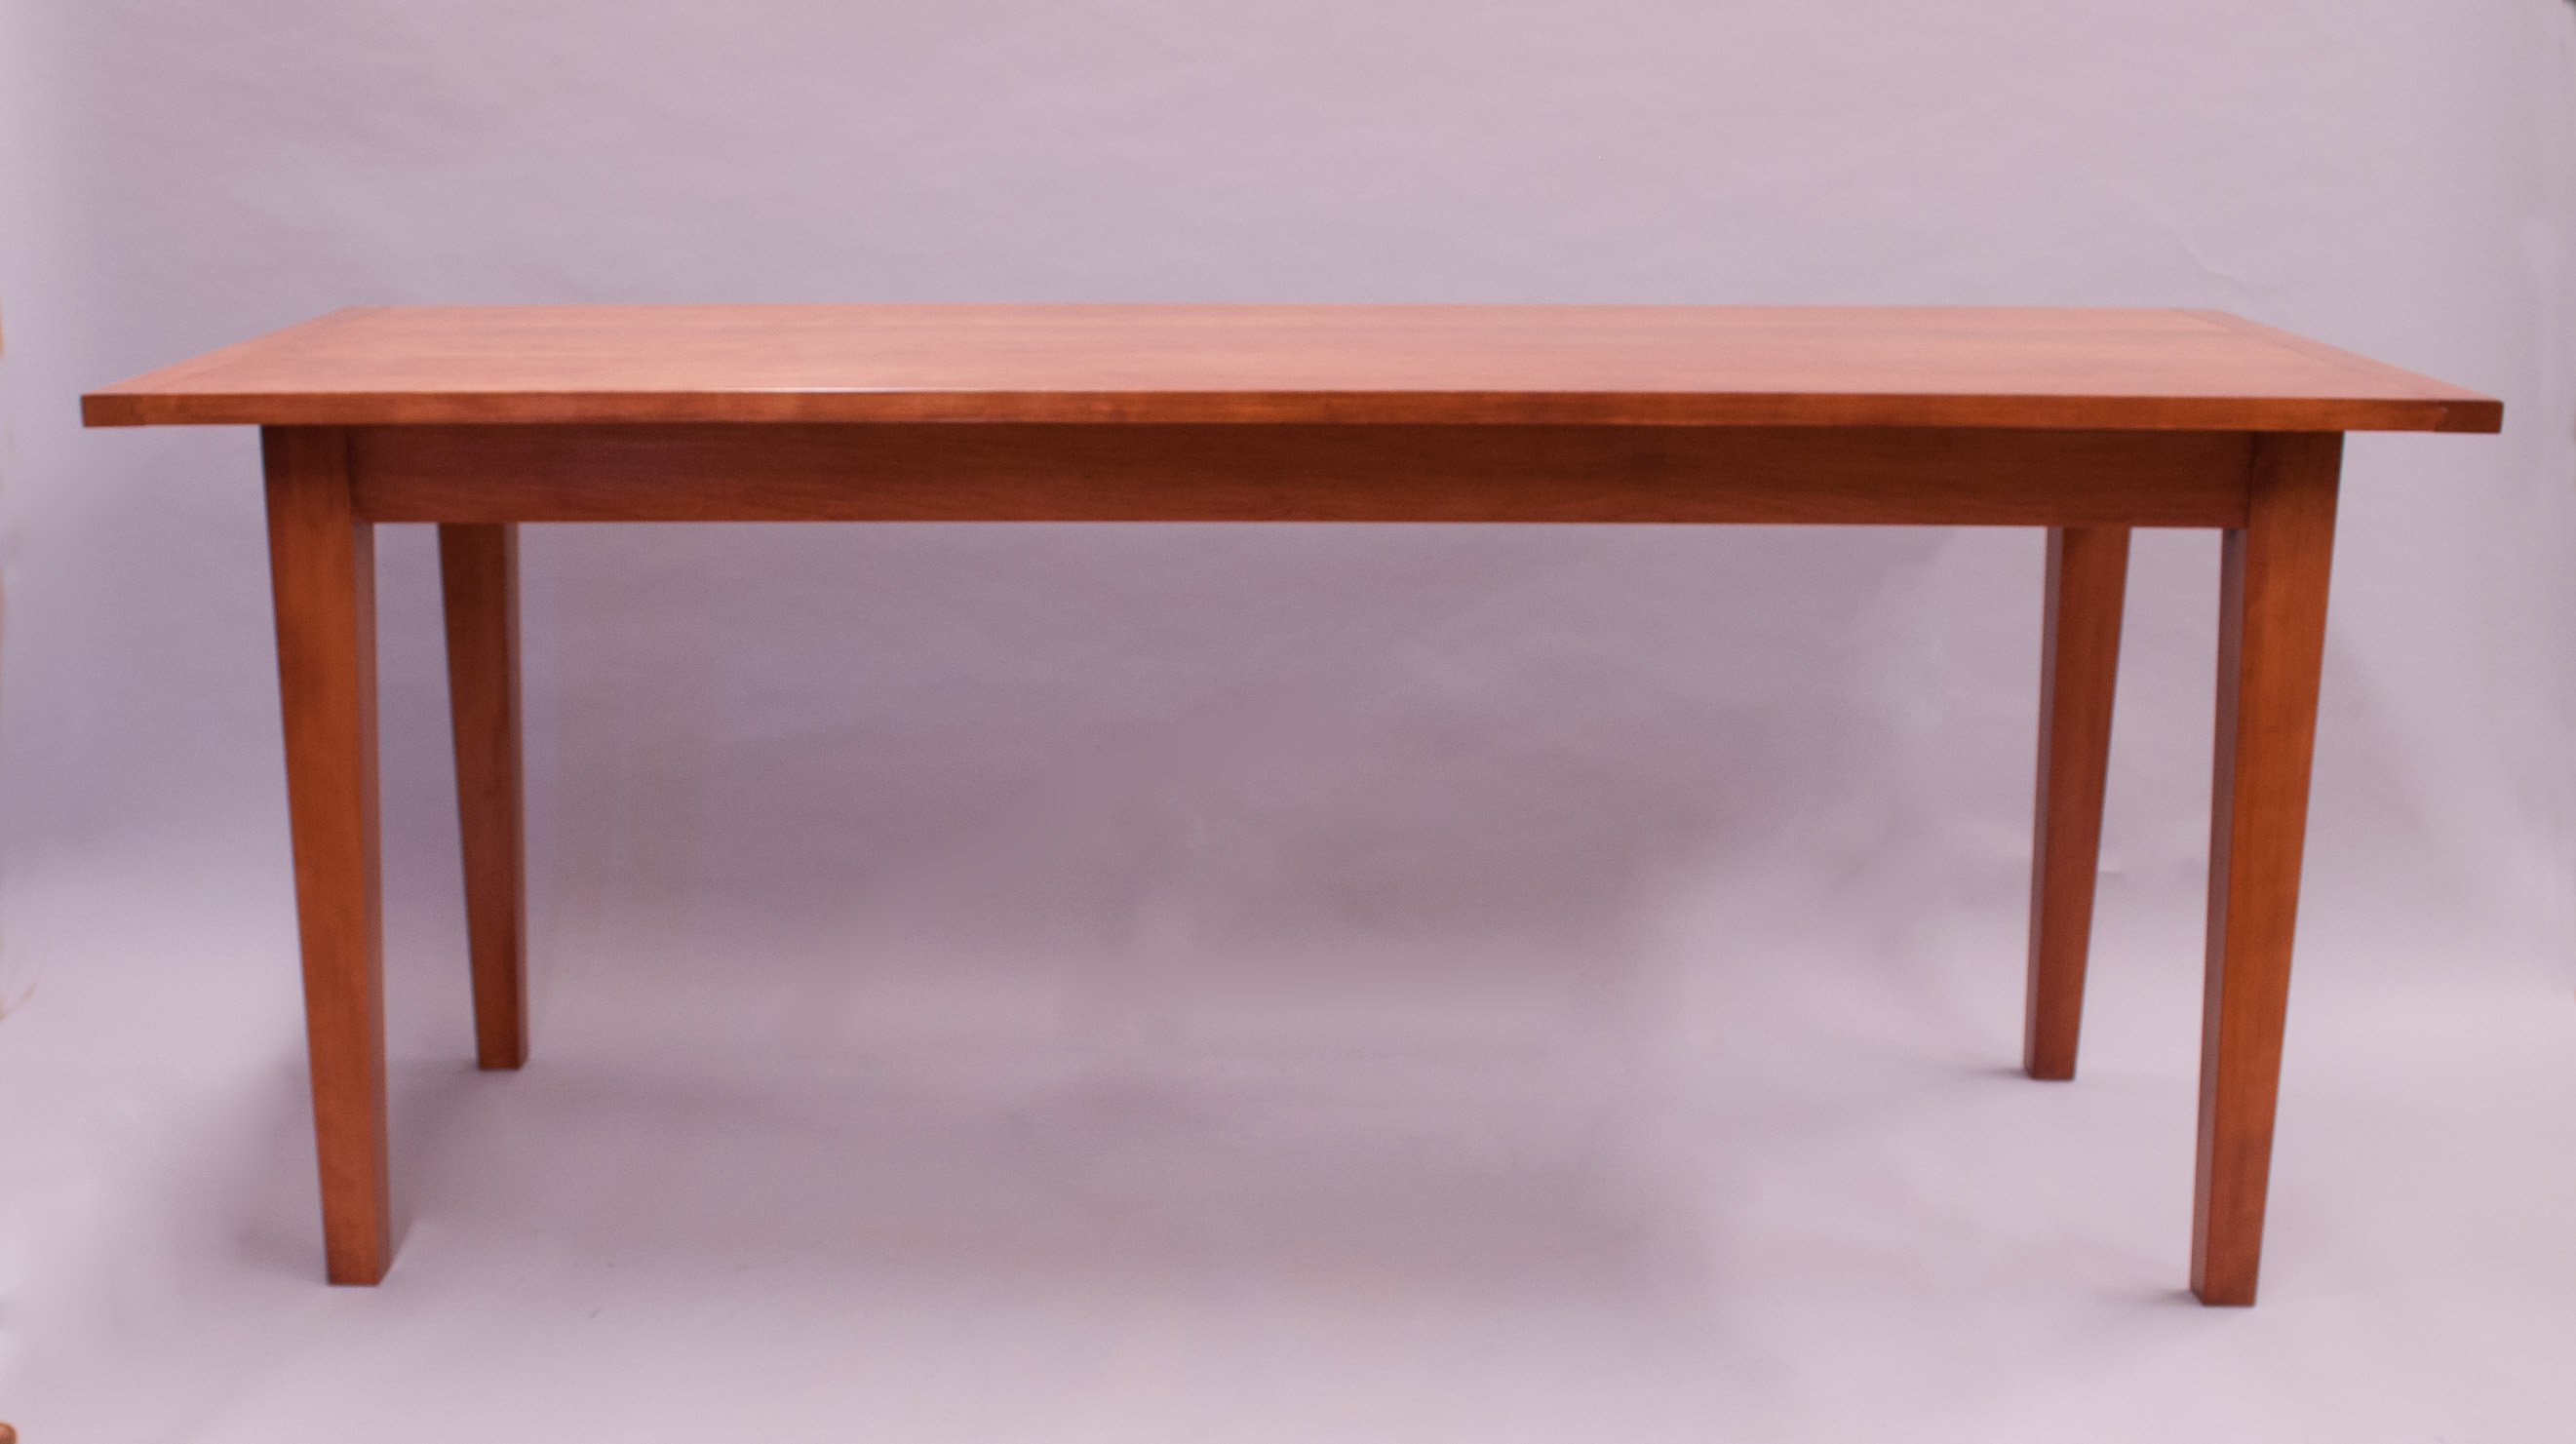 Tapered Leg Table In Cherry